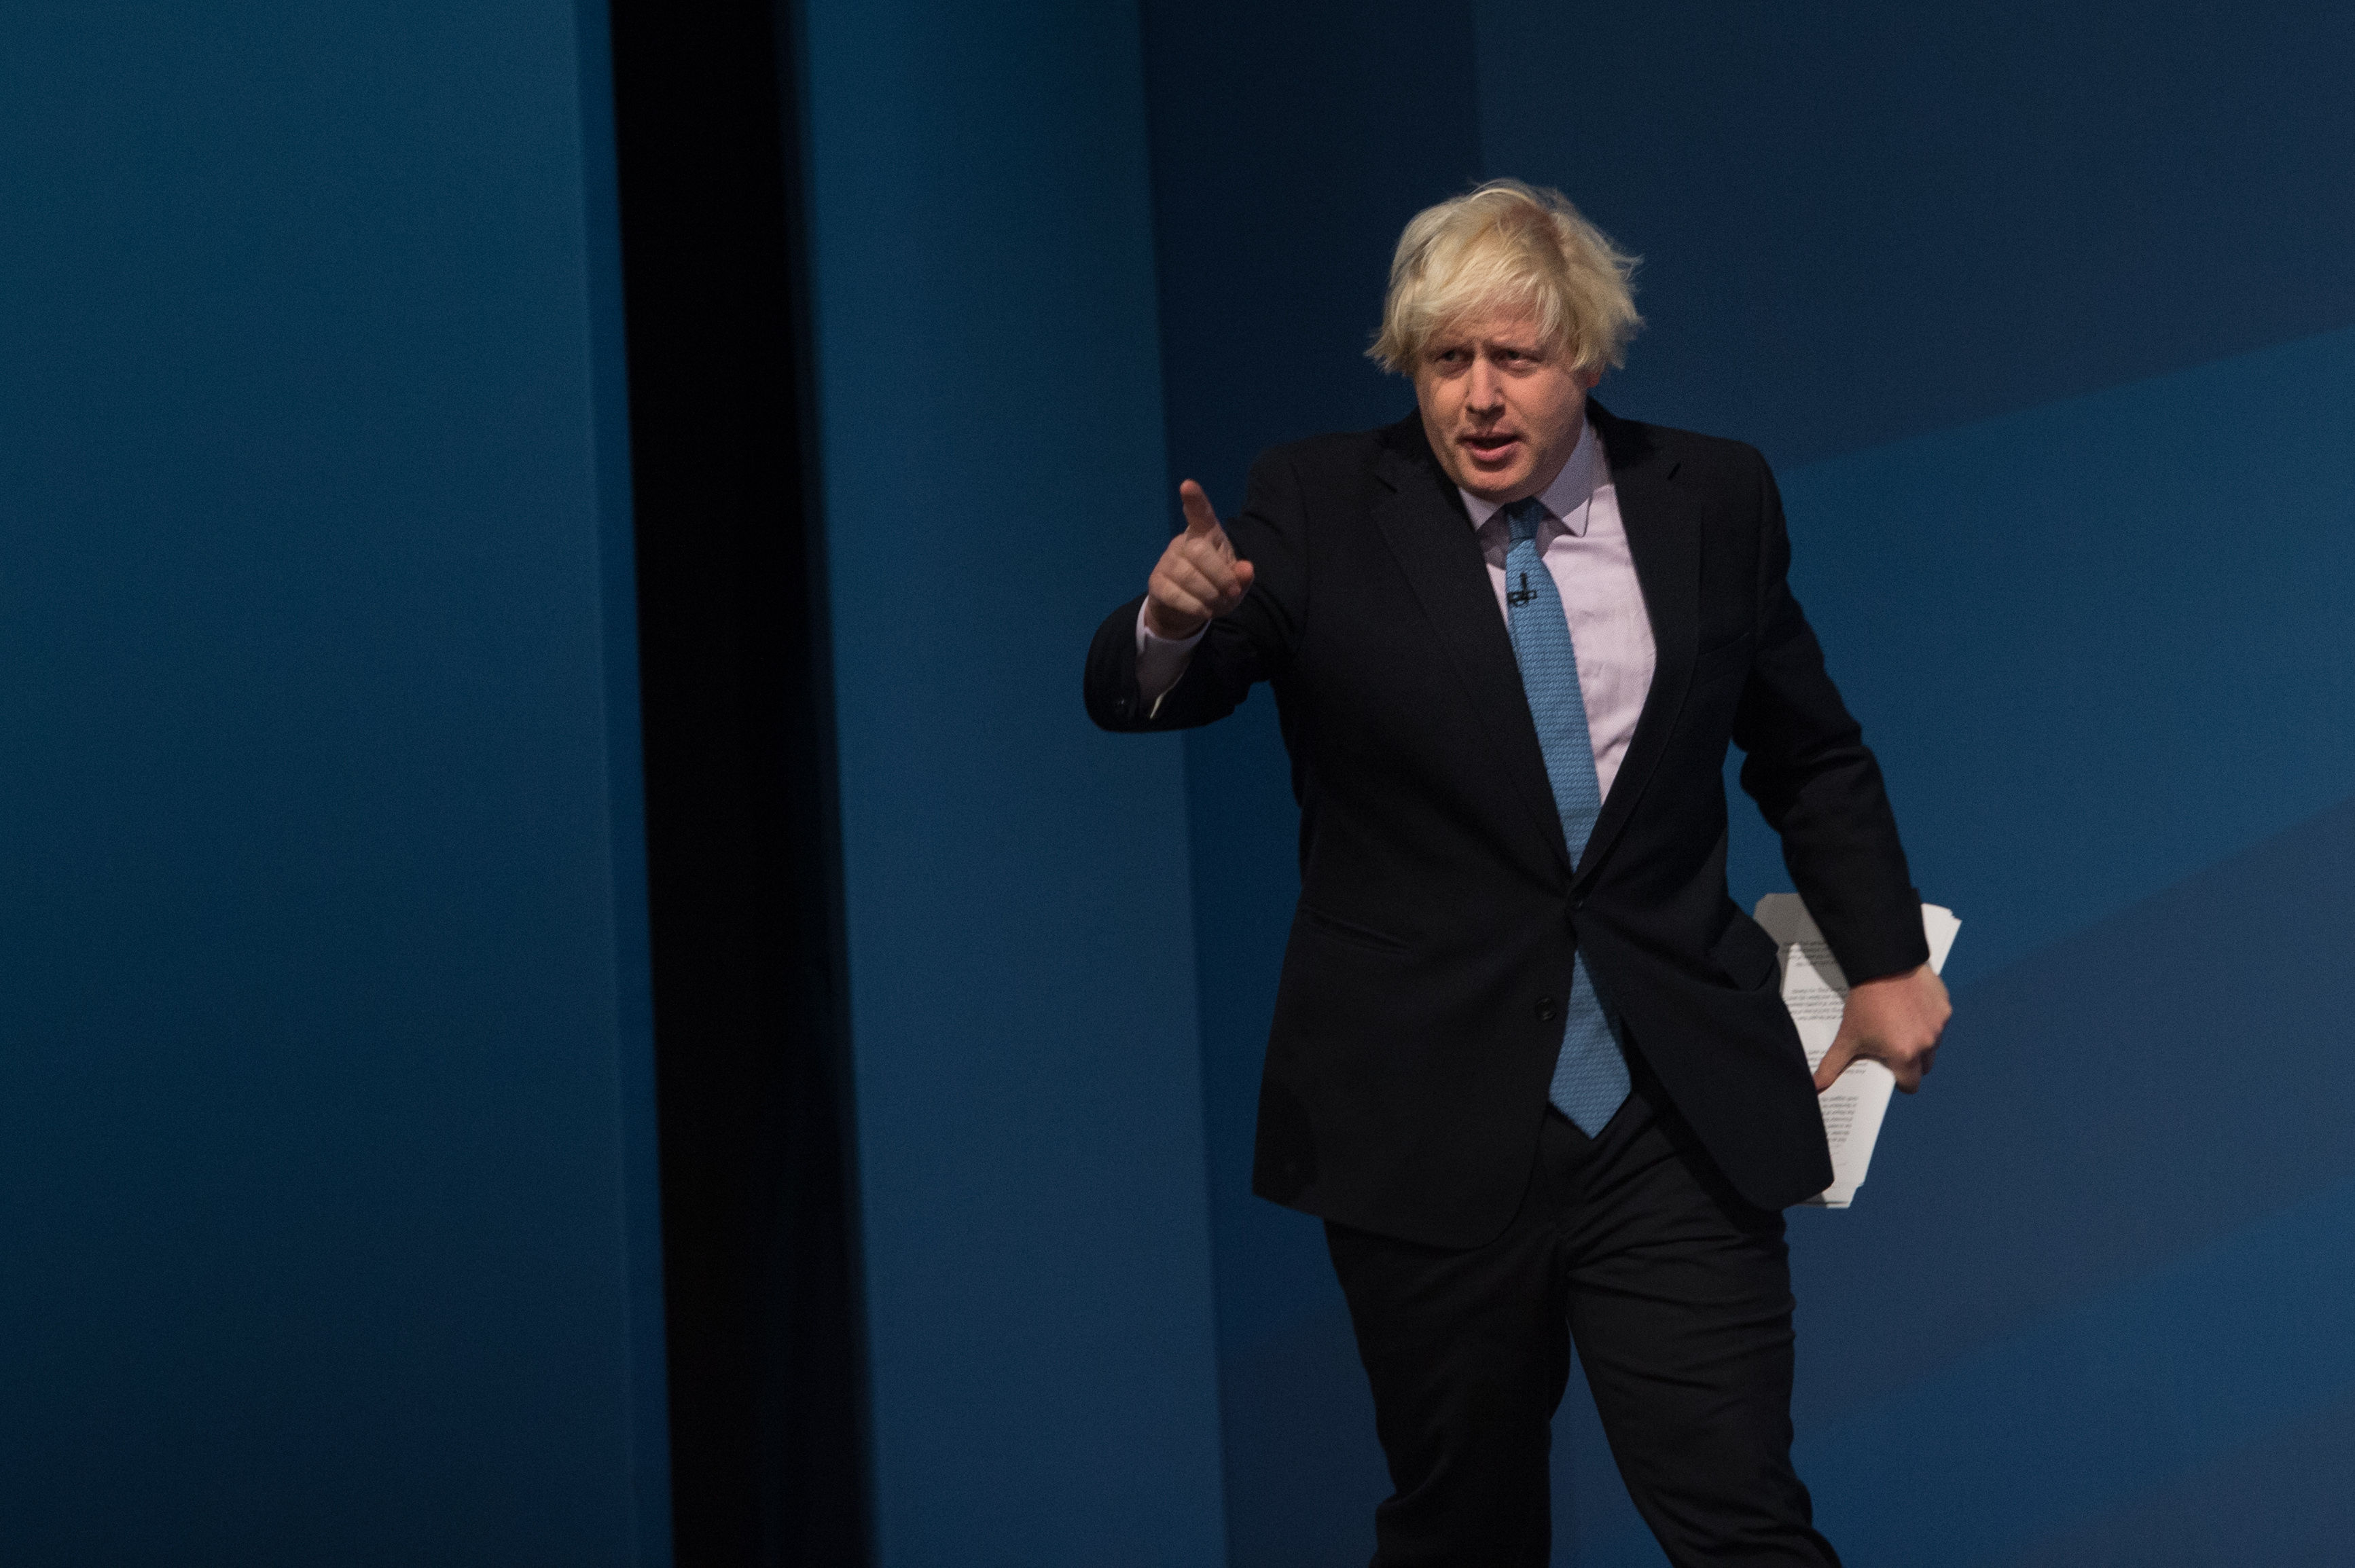 Mayor of London Boris Johnson addresses the Conservative Party conference in Manchester.